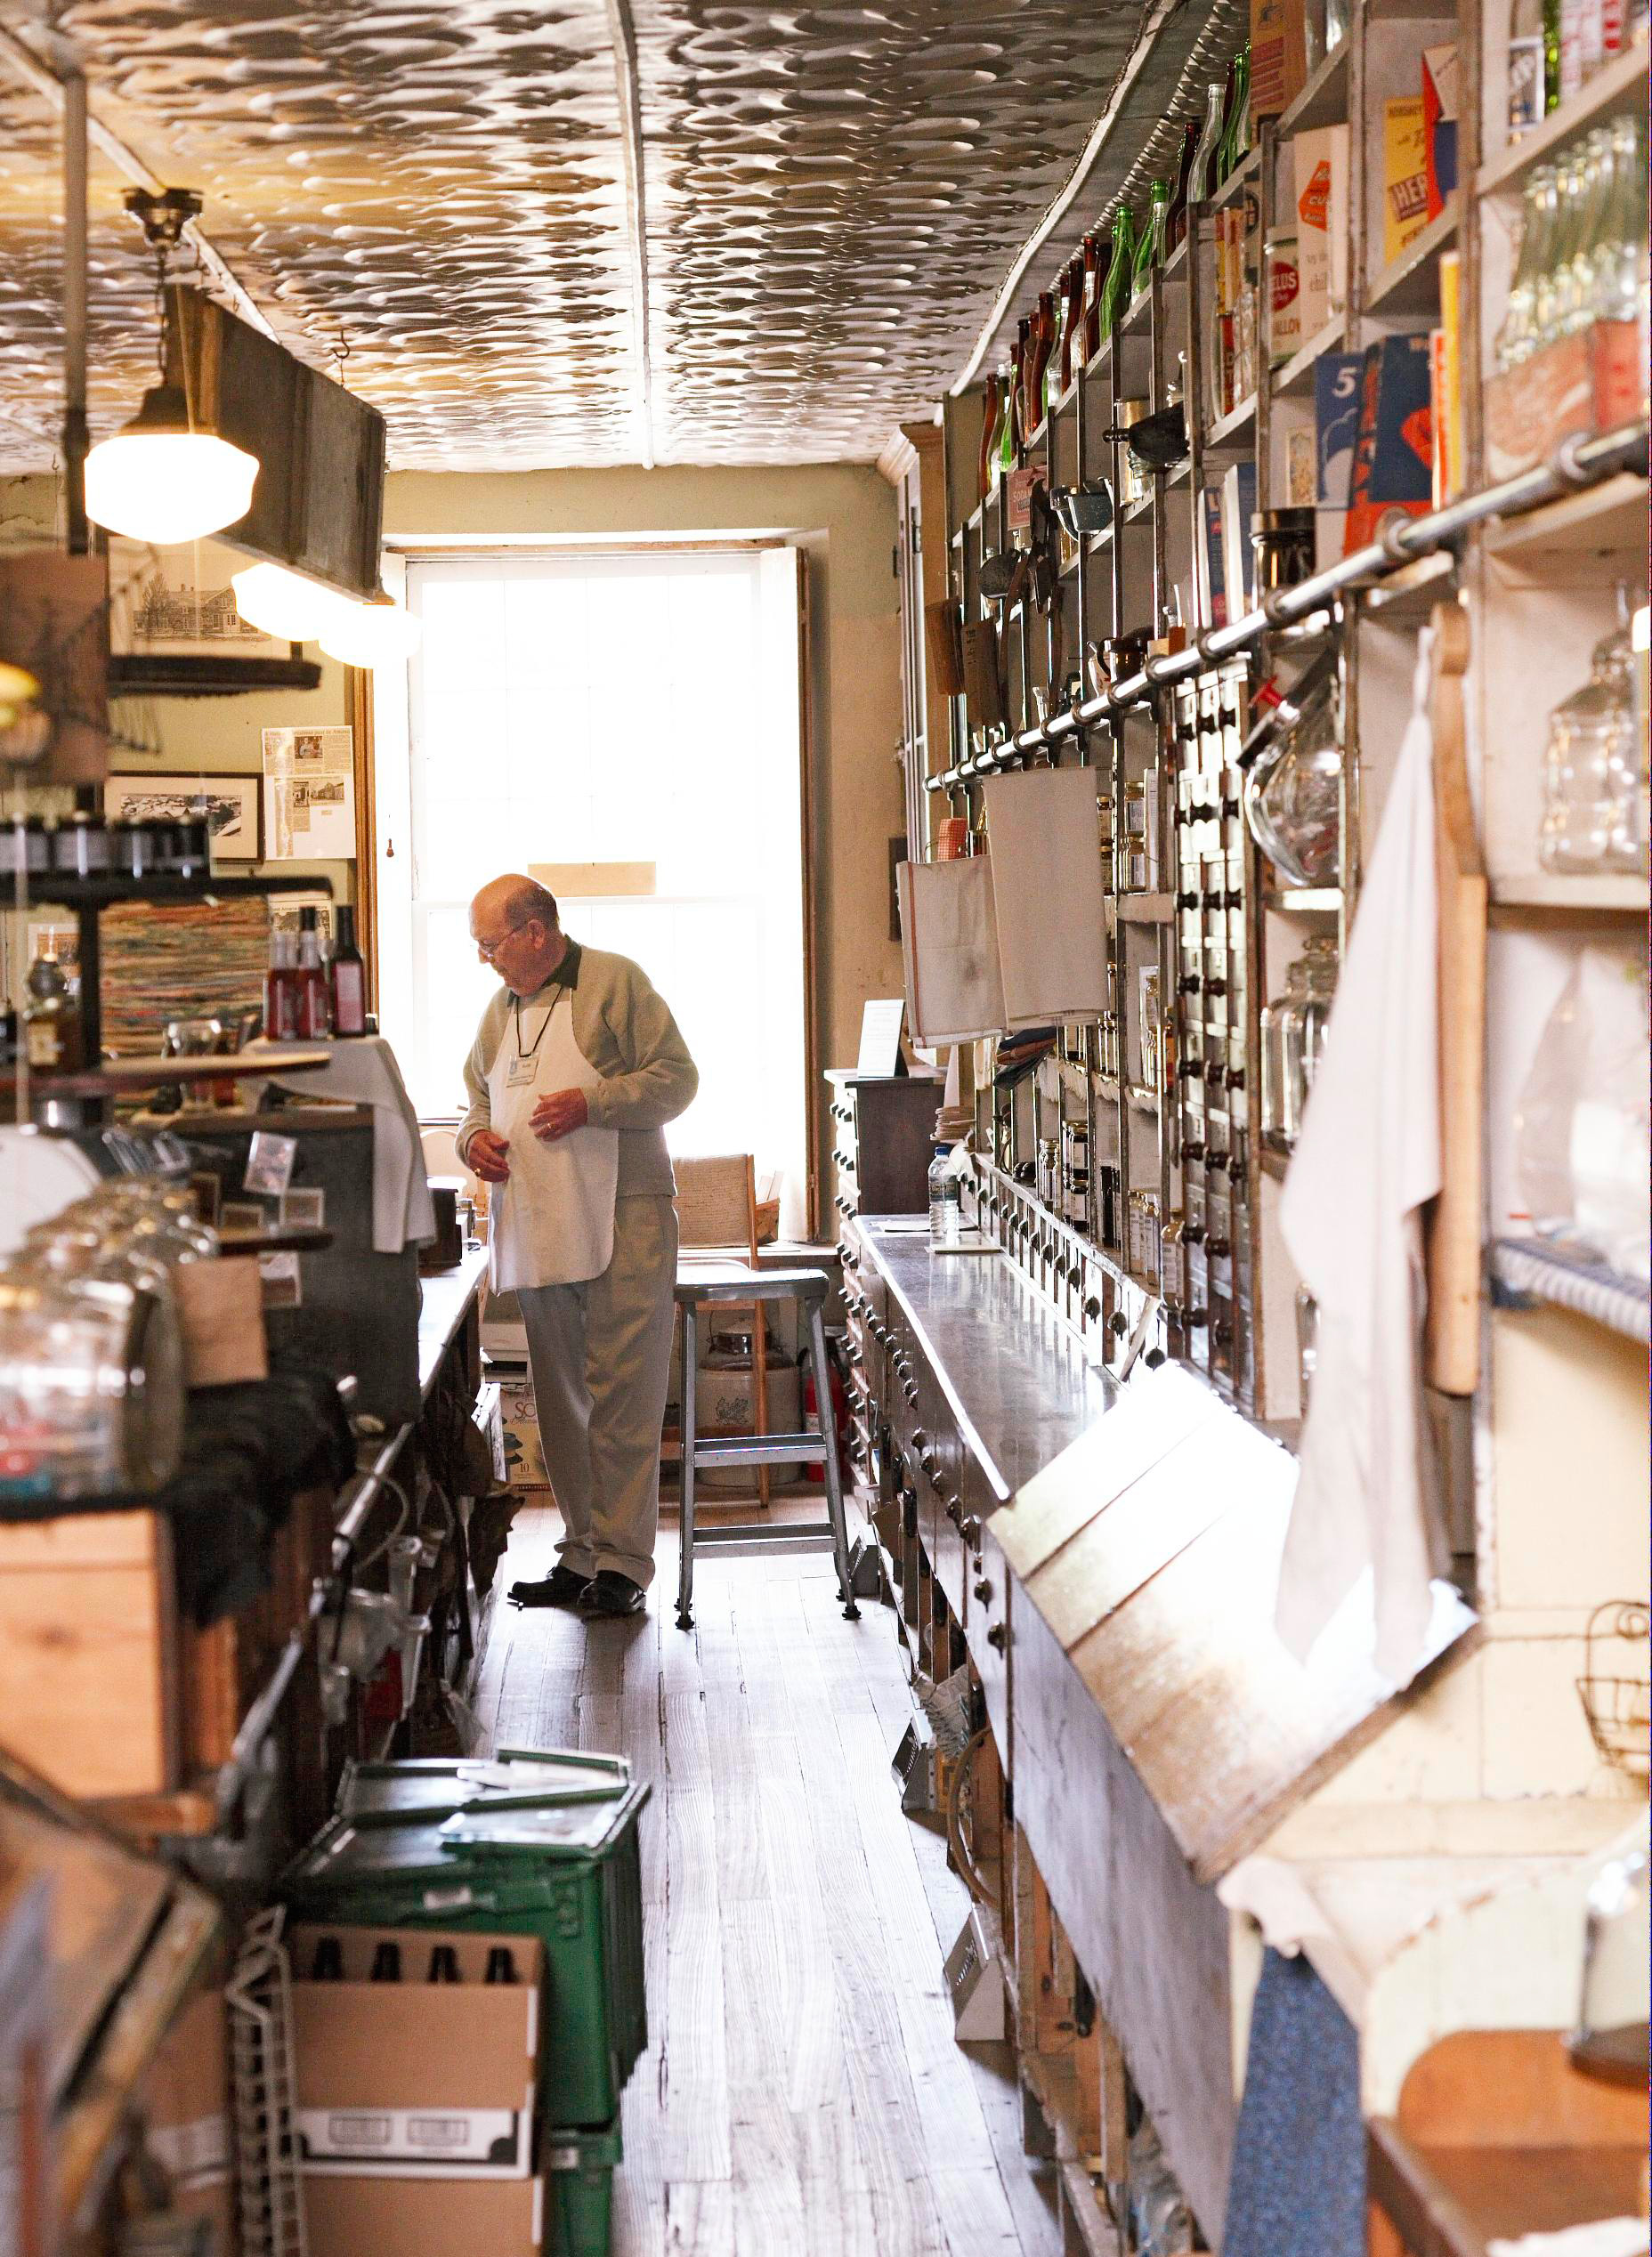 The High Amana General Store sports the original tin ceiling and sells old-fashioned toys and soaps (amanaheritage.org).